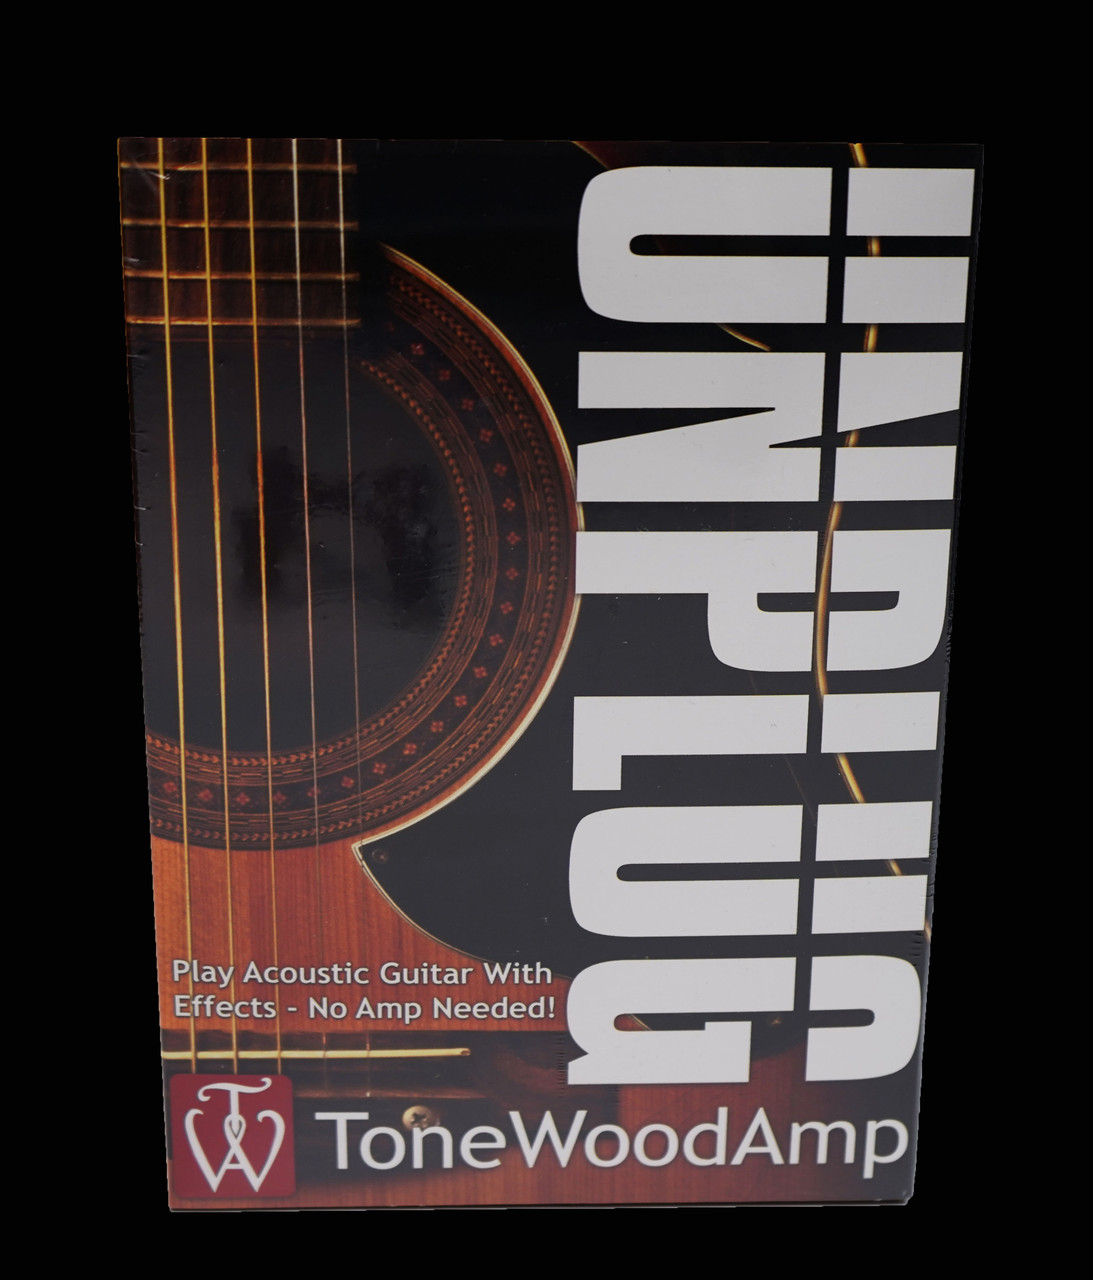 ToneWoodAmp for Acoustic Guitar (Free 2-Day Shipping)